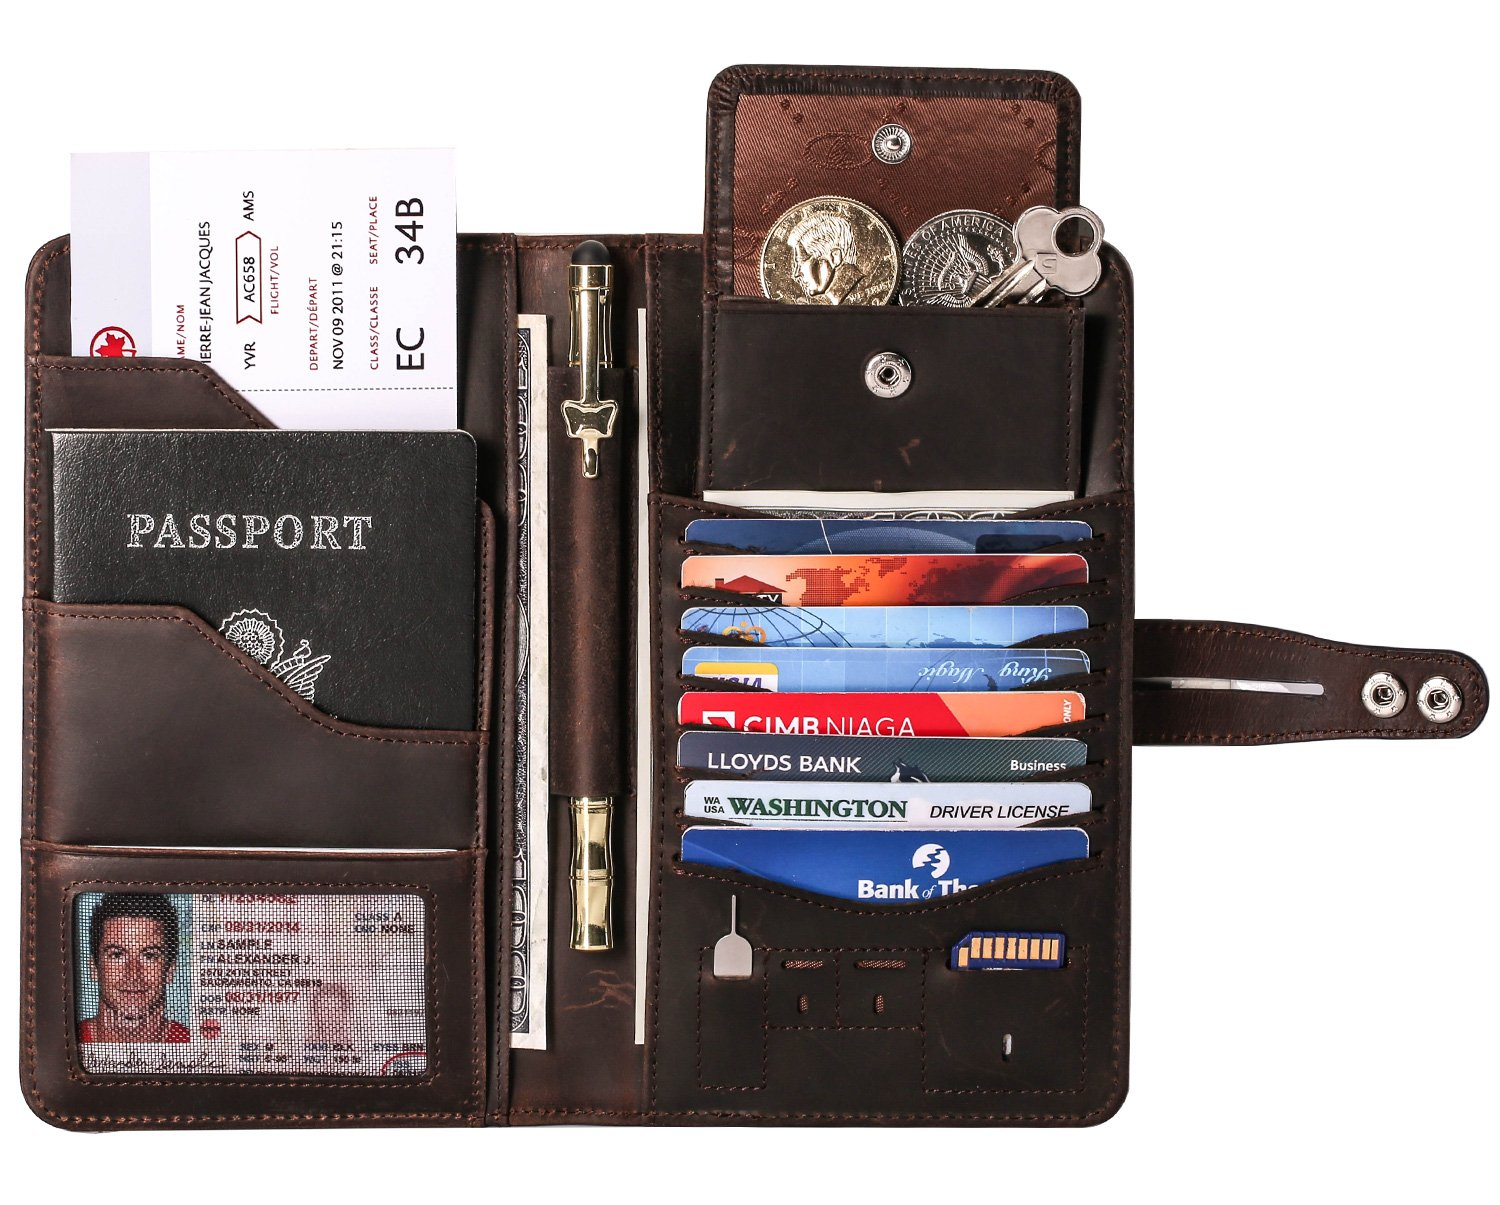 Travel Wallet with RFID Blocking Awesome Passport Wallet Credit Cards Holder Document Organizer Genuine Leather